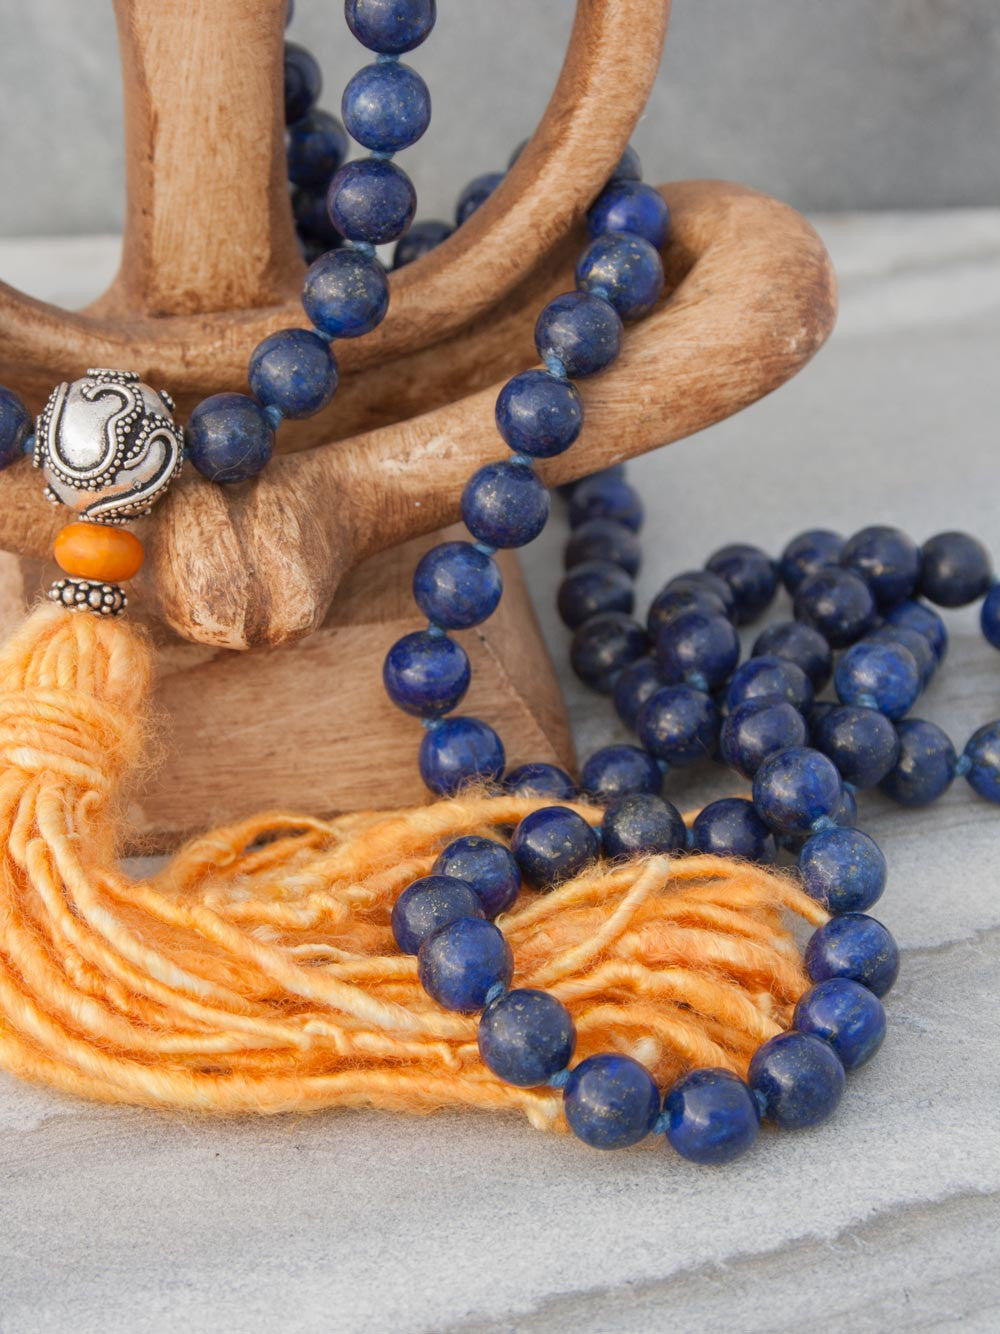 Resounding Om Mala is hand-knotted in 10mm lapis lazuli, with amber accents, handmade 925 silver Om Guru, and vibrant sari silk tassel: partial view.